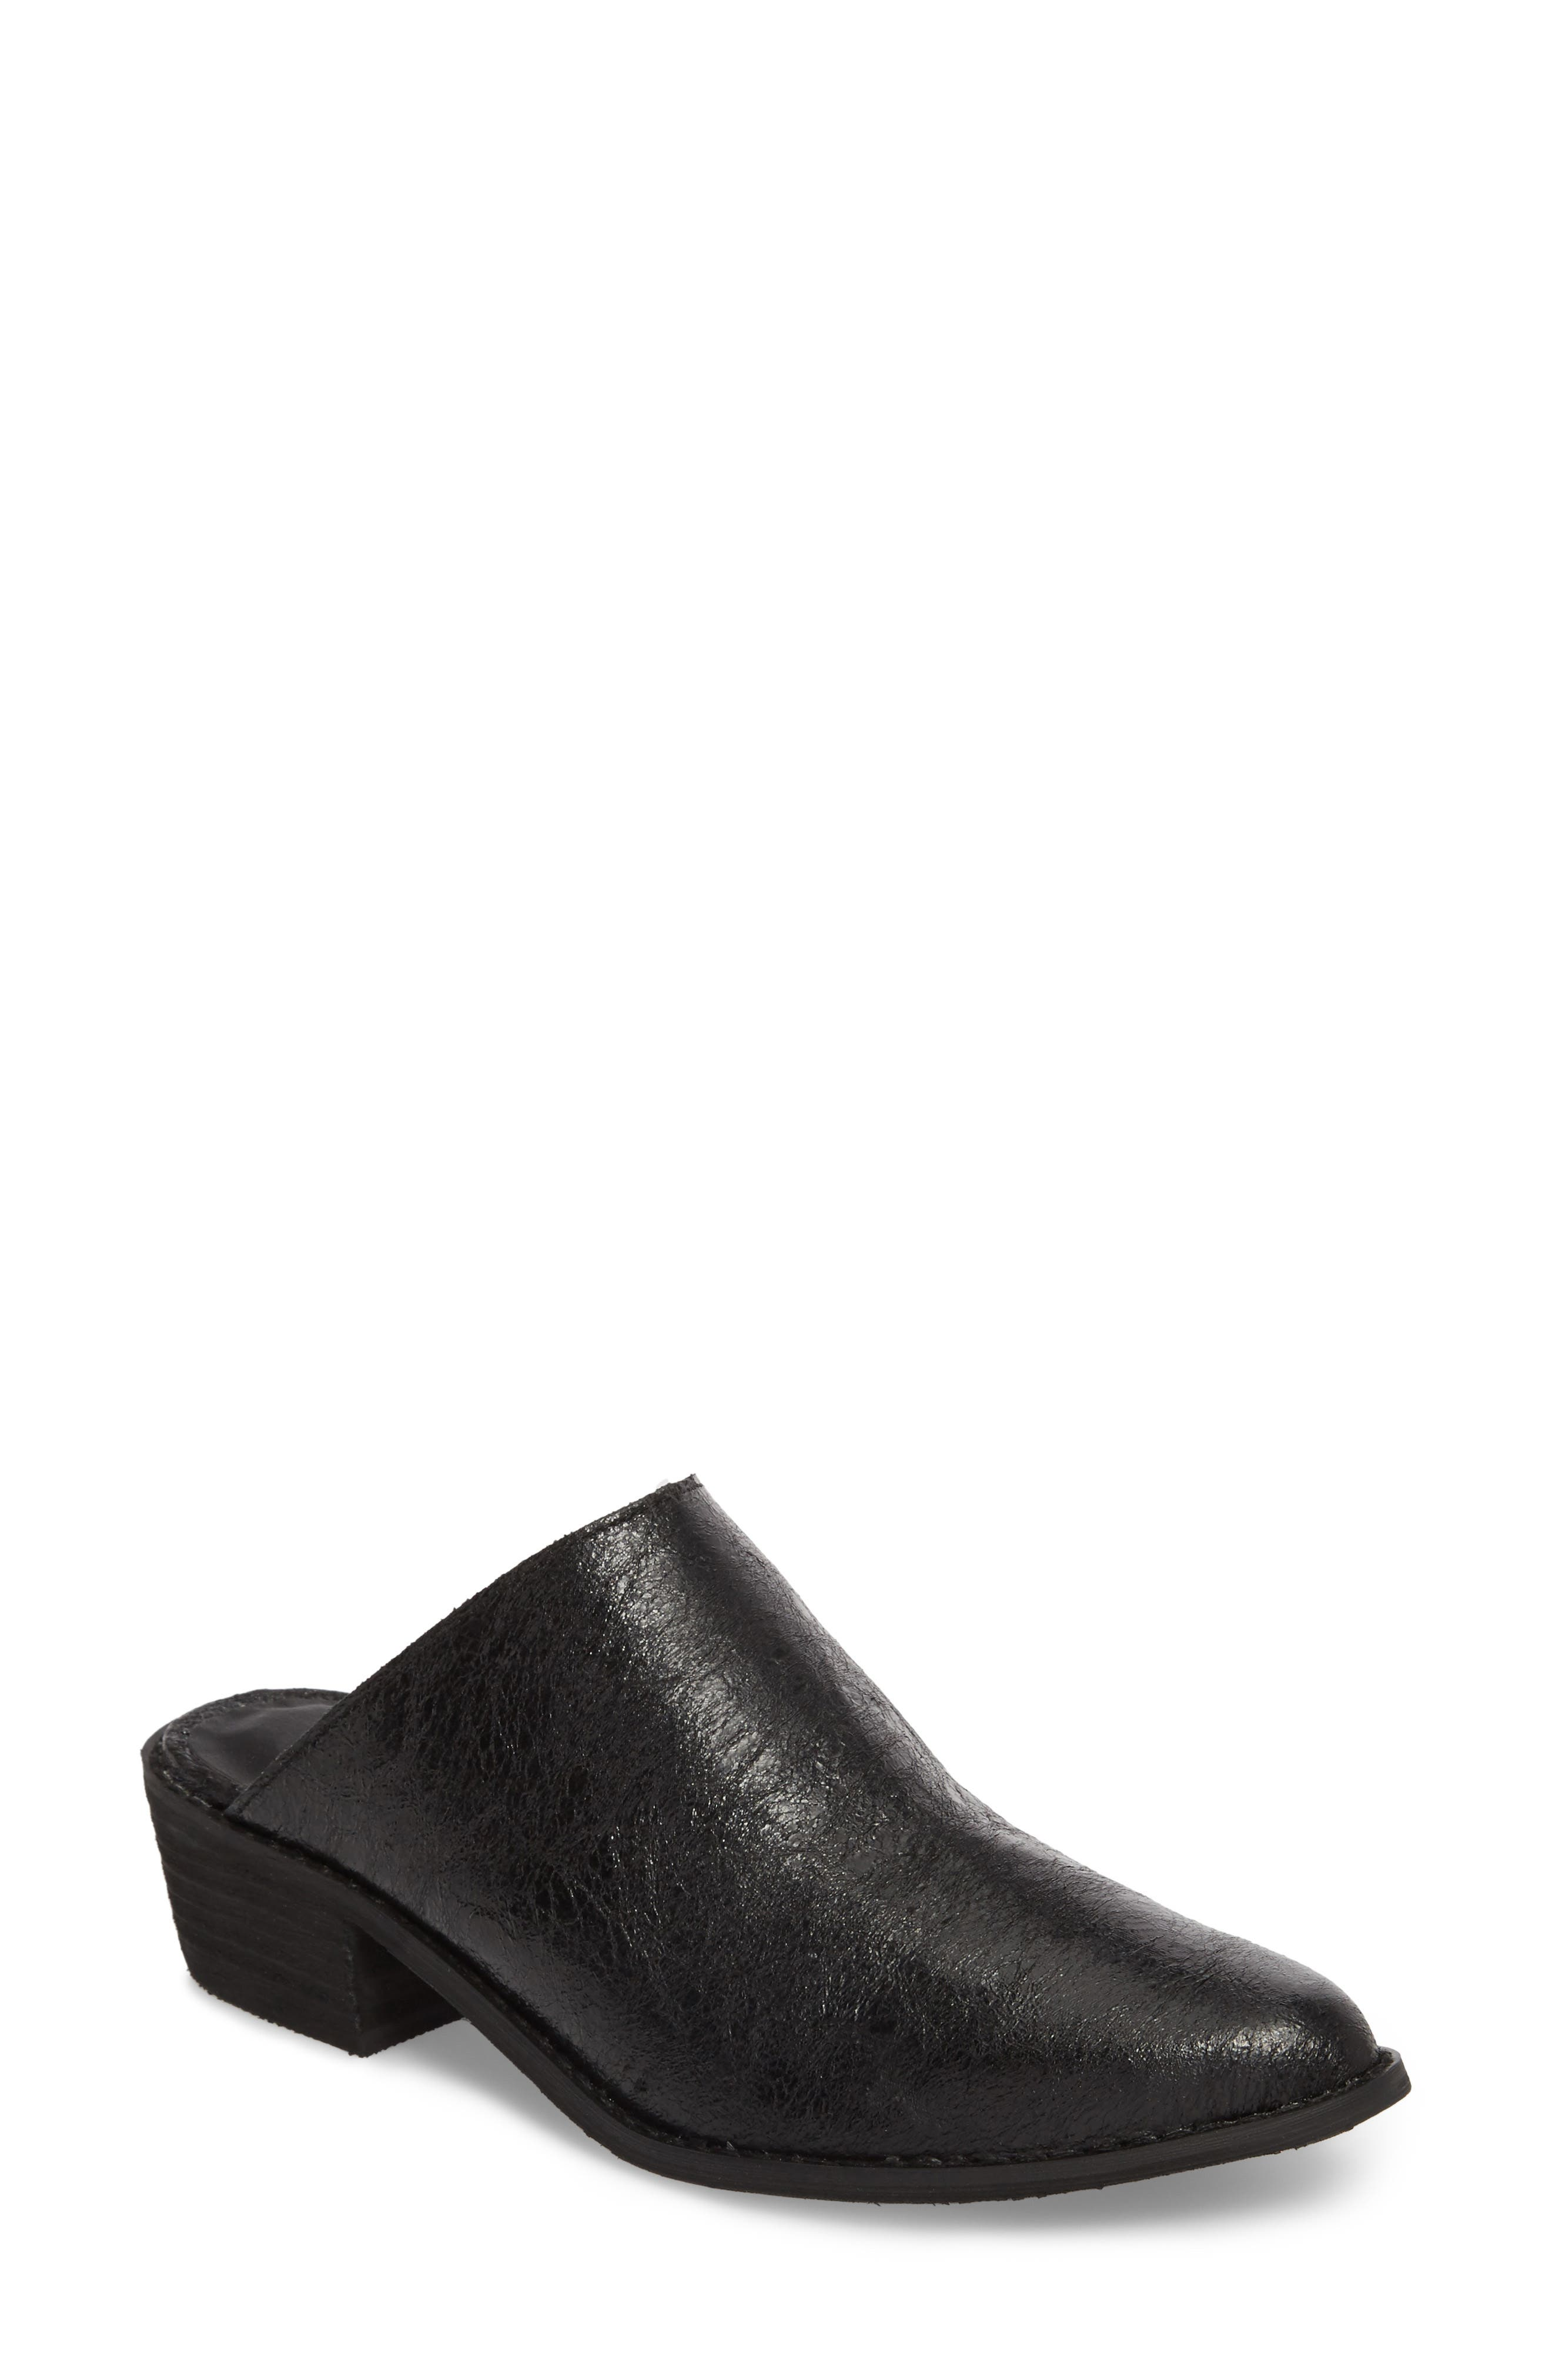 Finesse Mule,                         Main,                         color, Black